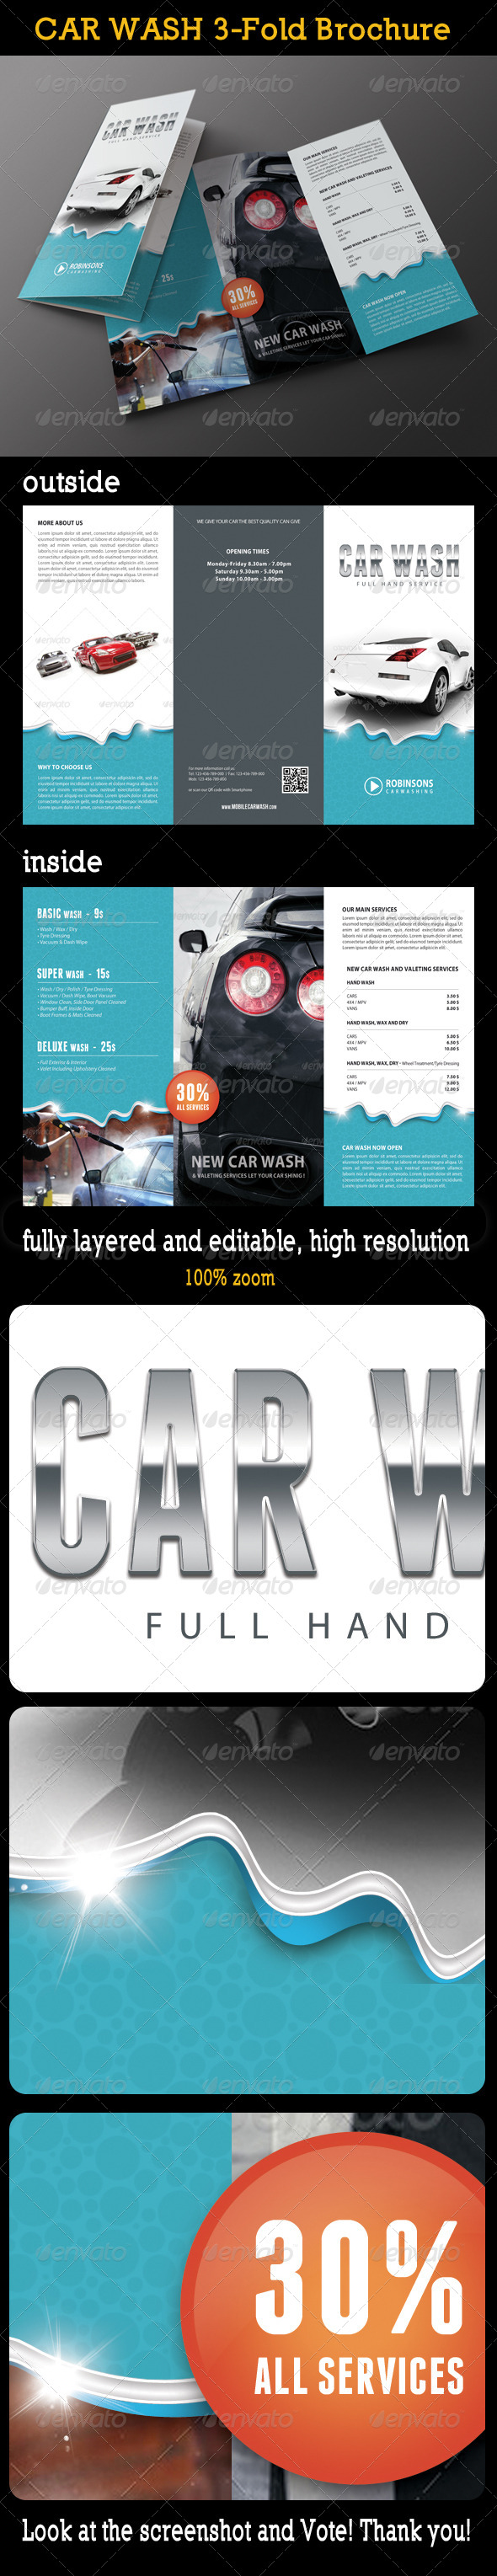 GraphicRiver Car Wash 3-Fold Brochure 02 8009810